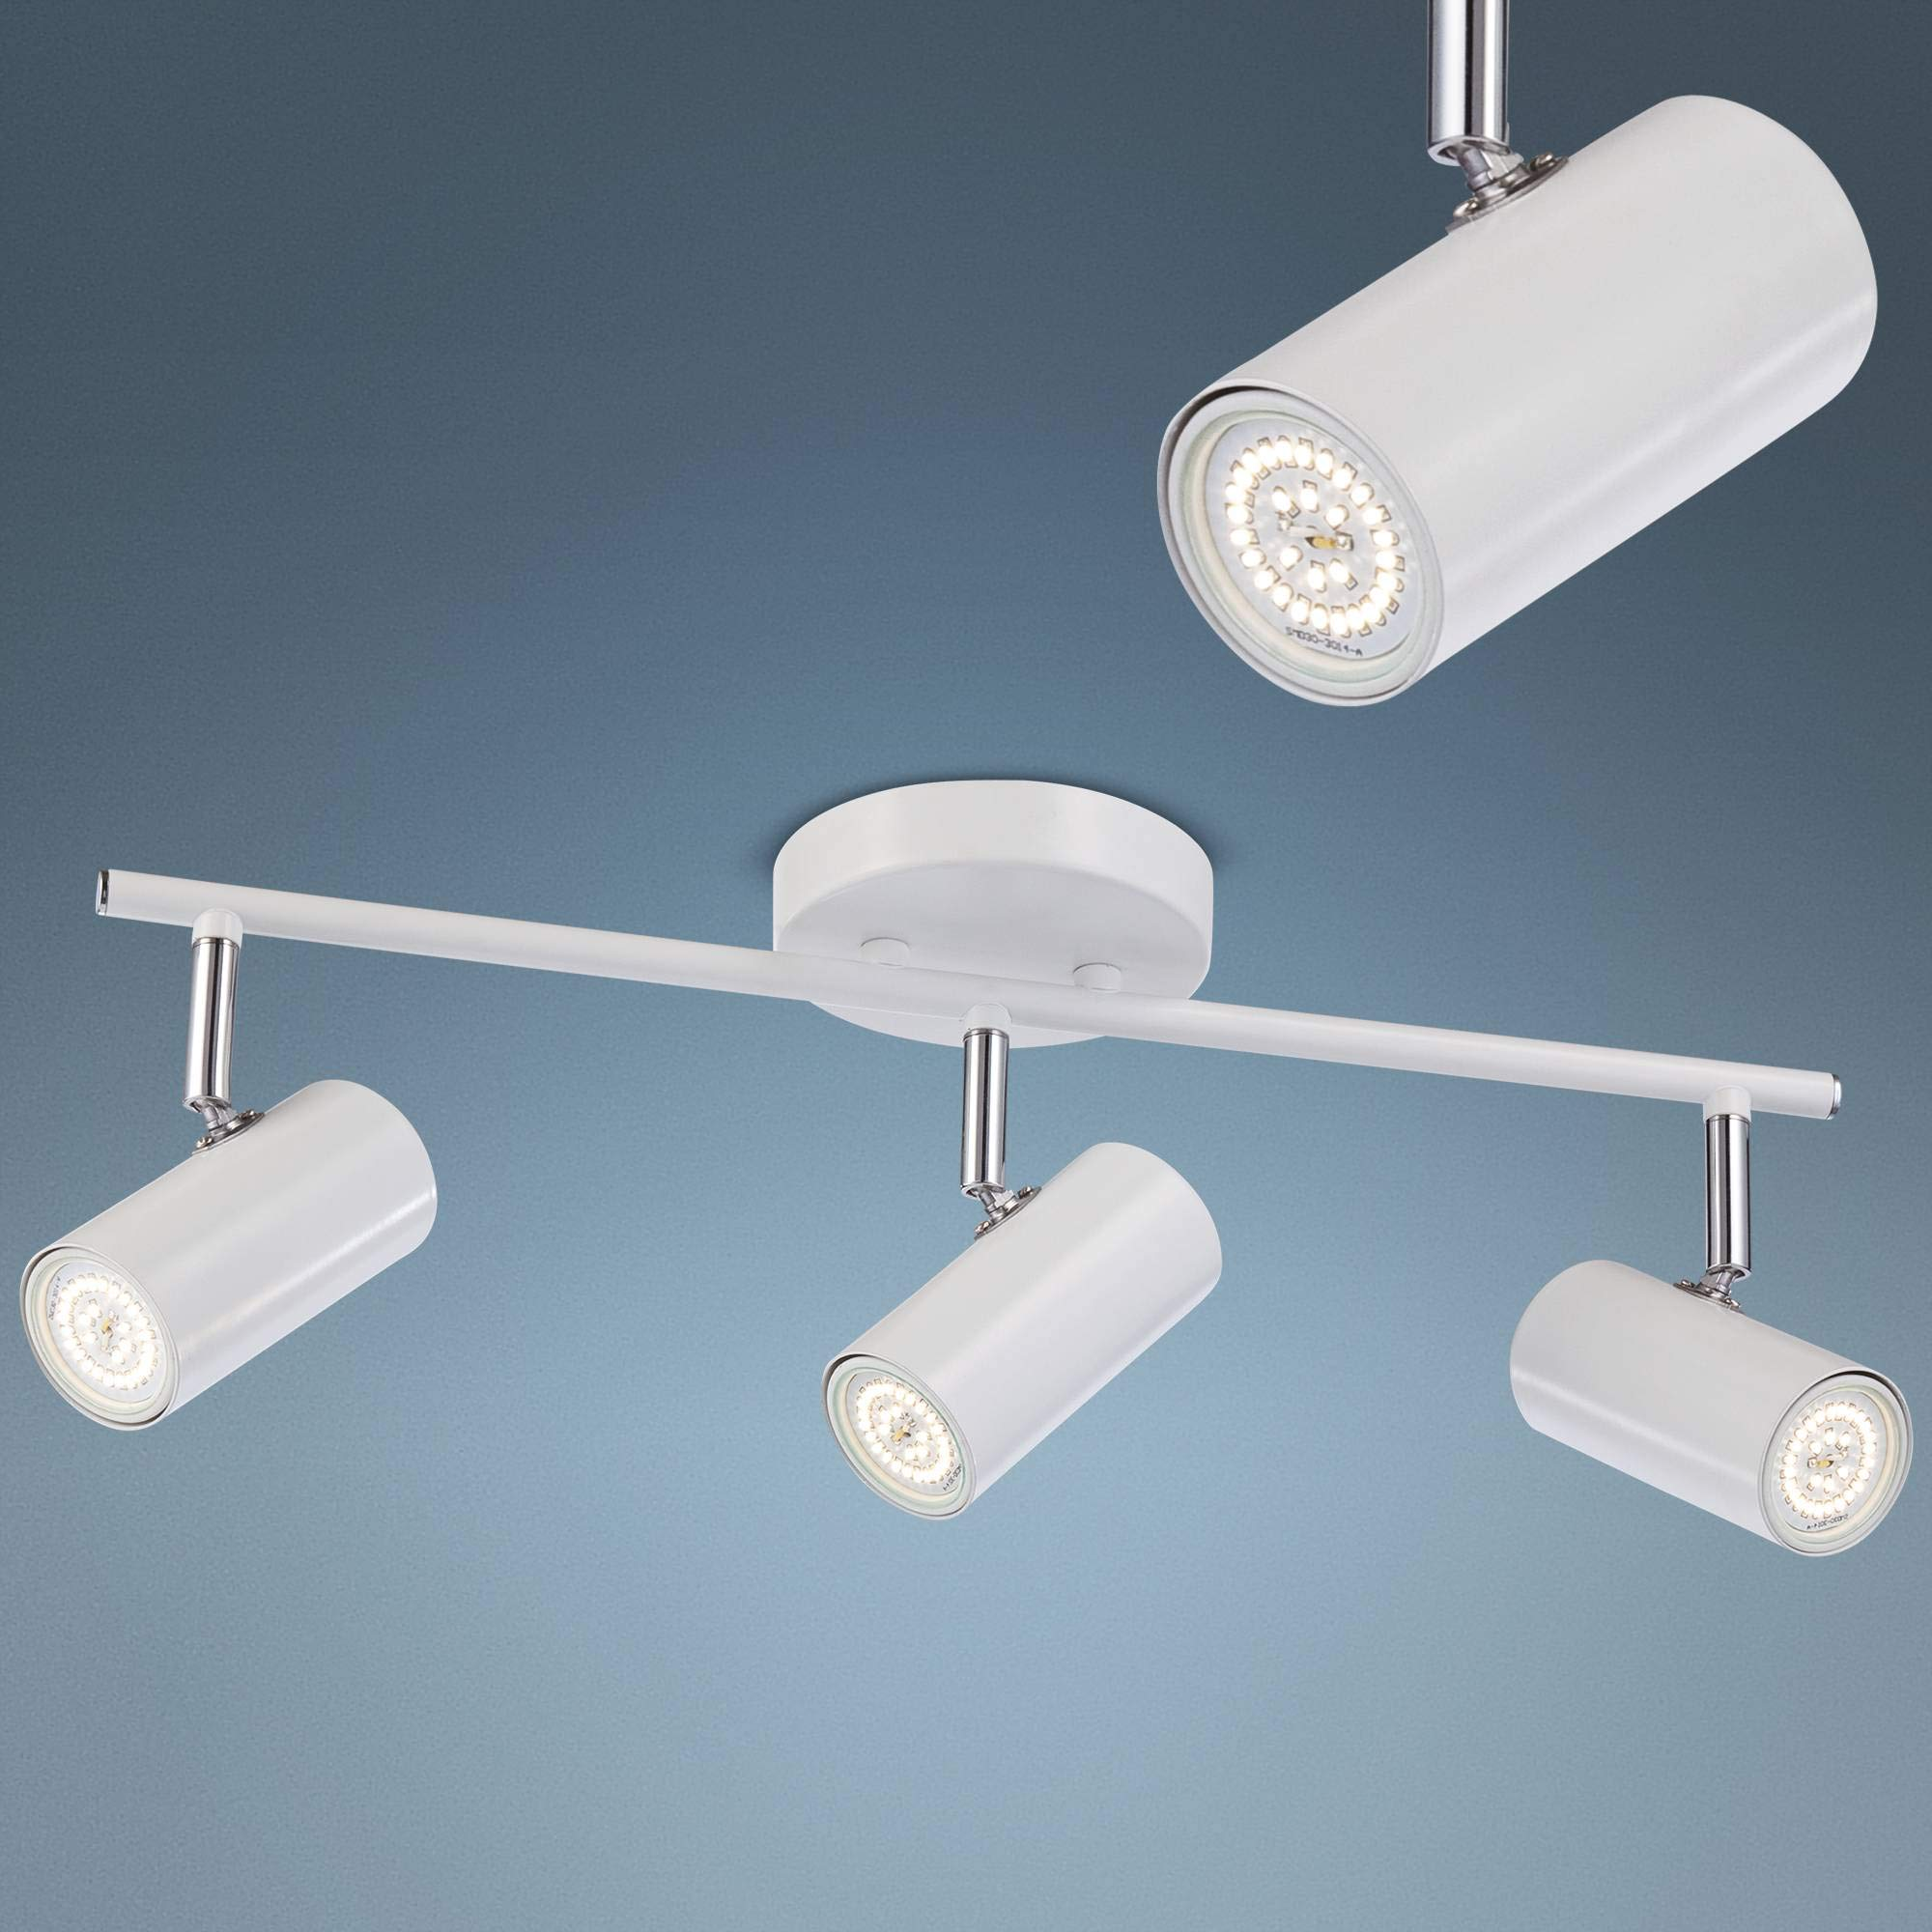 Galena 3-Light White LED Track Fixture - Pro Track